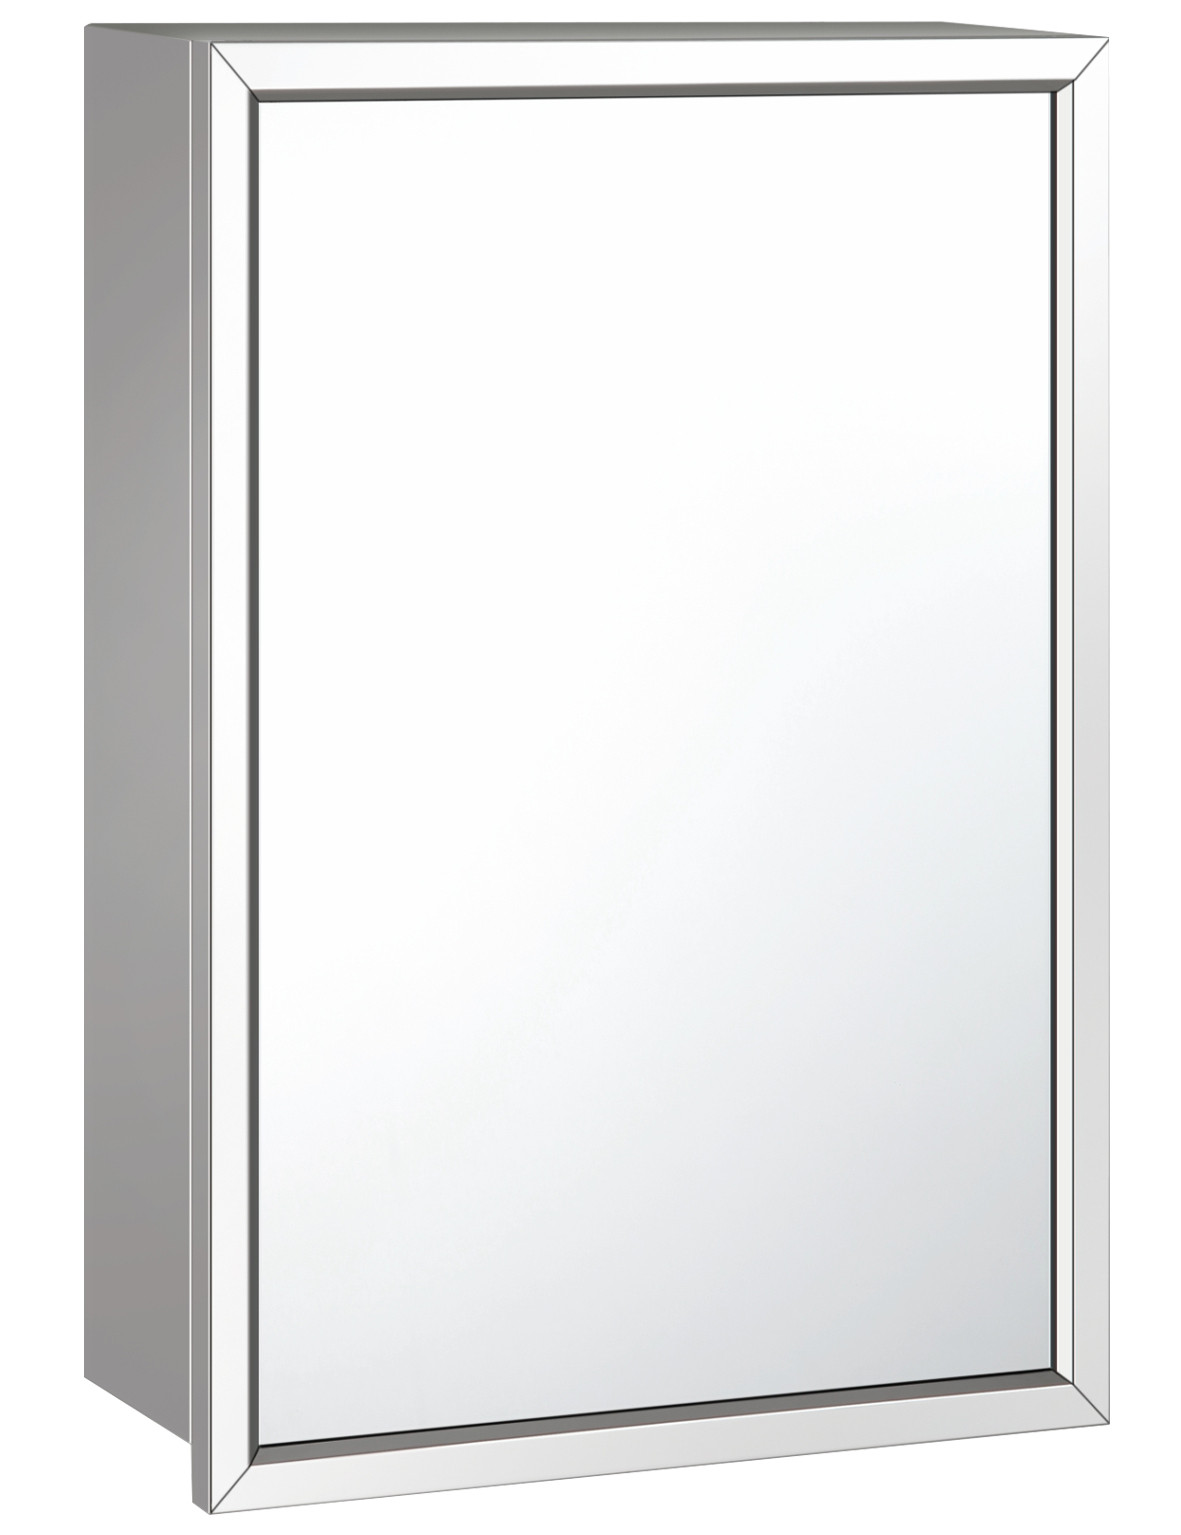 Eros Stainless Steel Cabinet